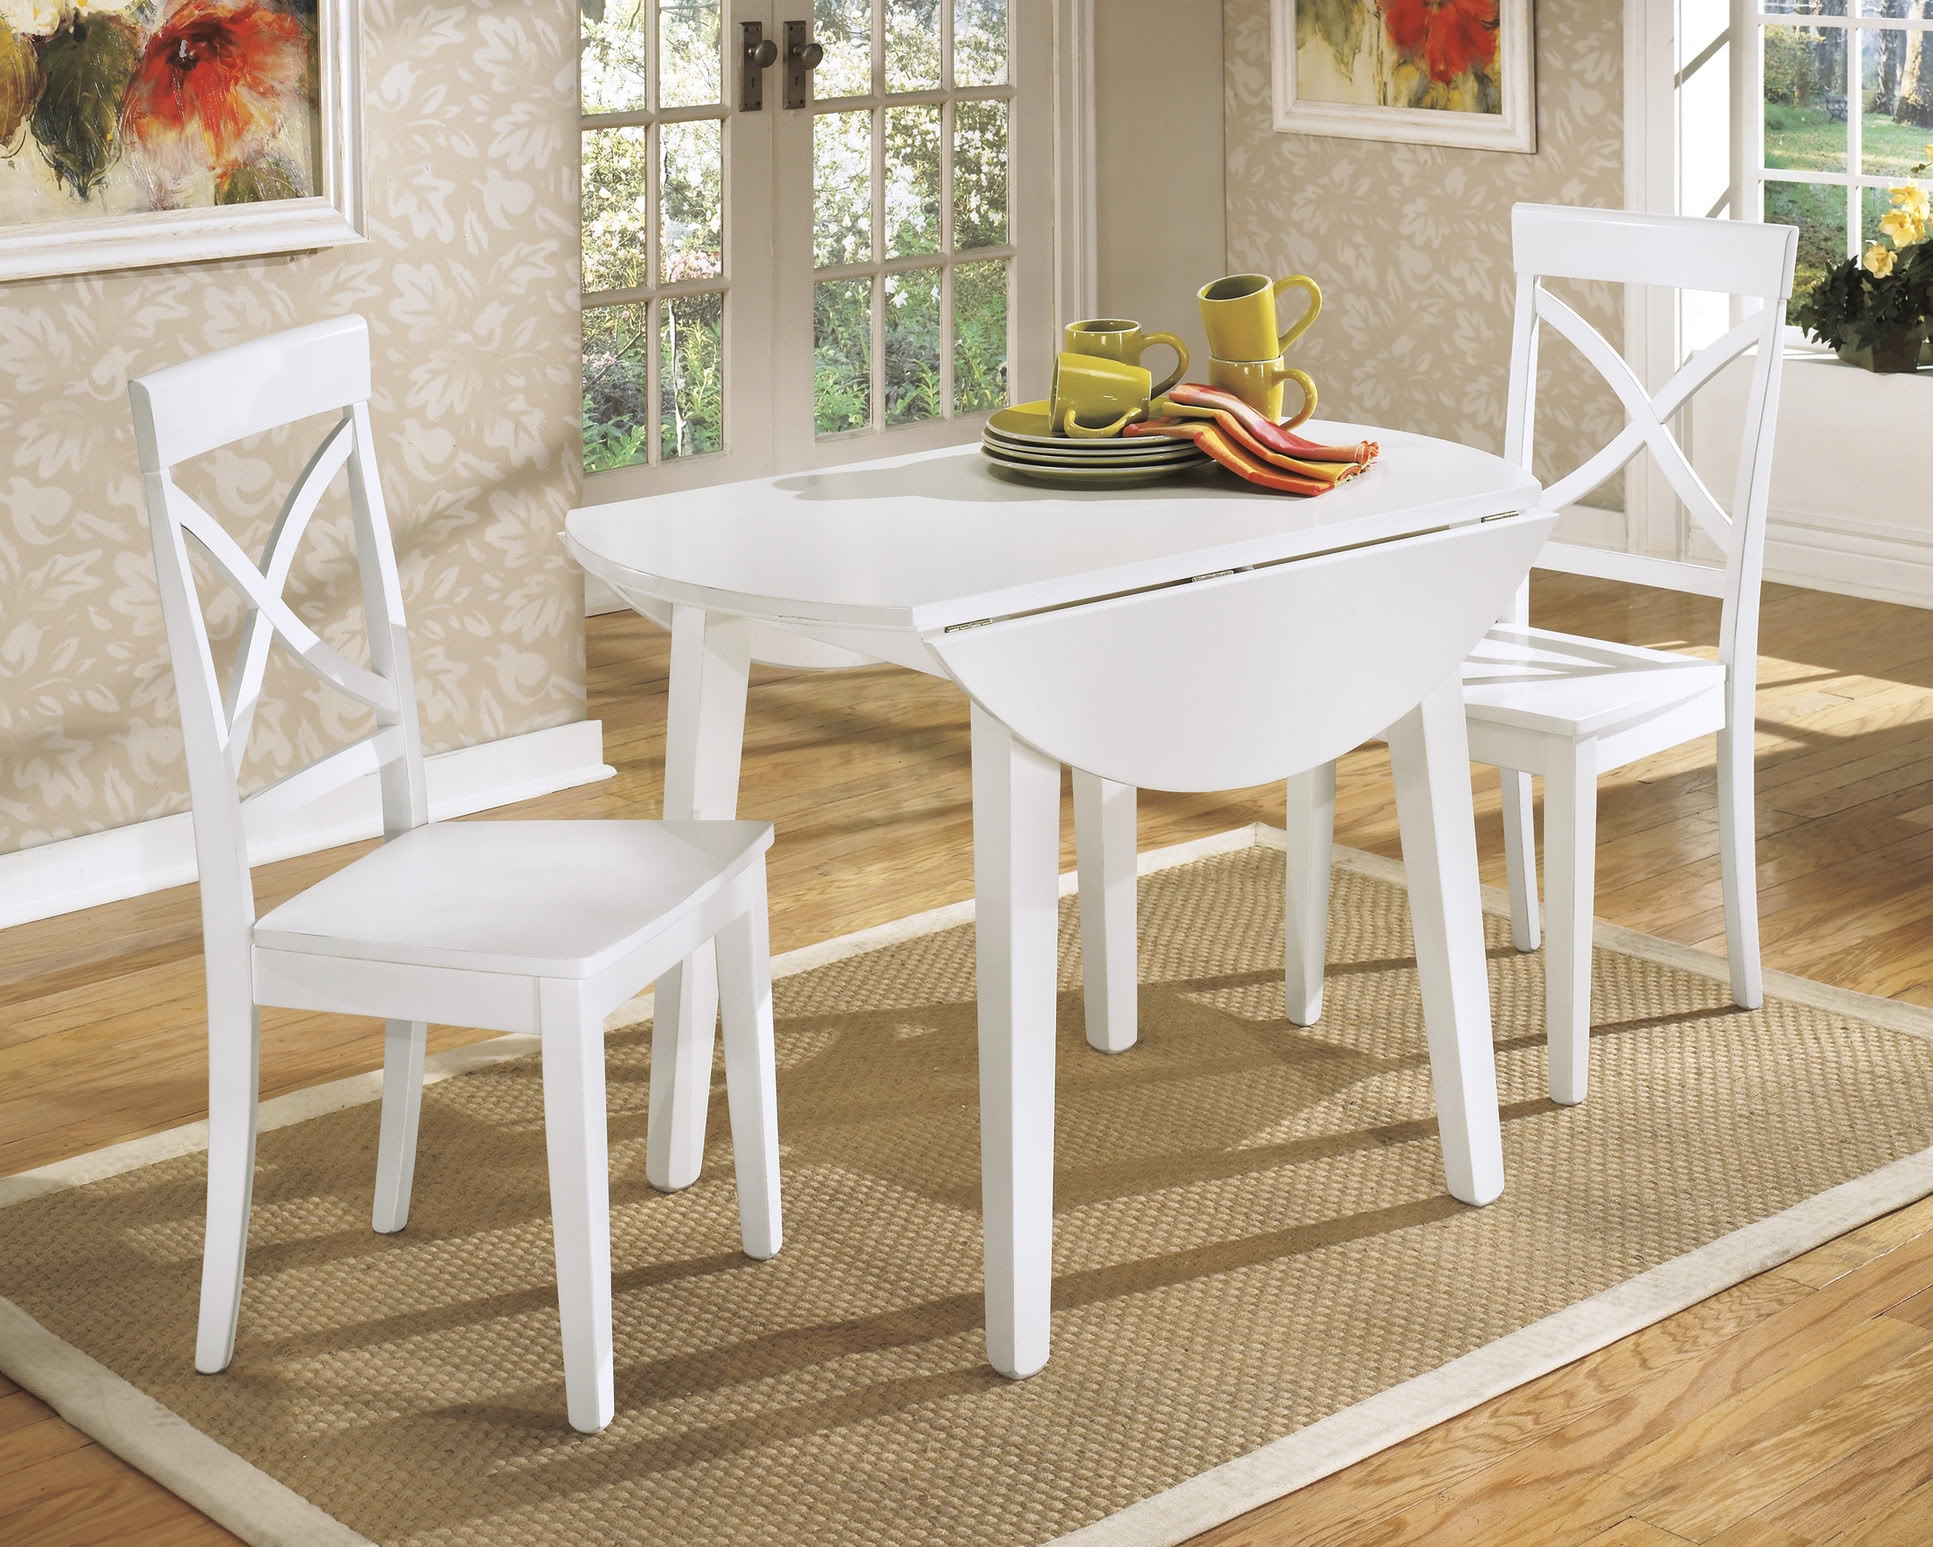 White Wood Folding Kitchen Chairs